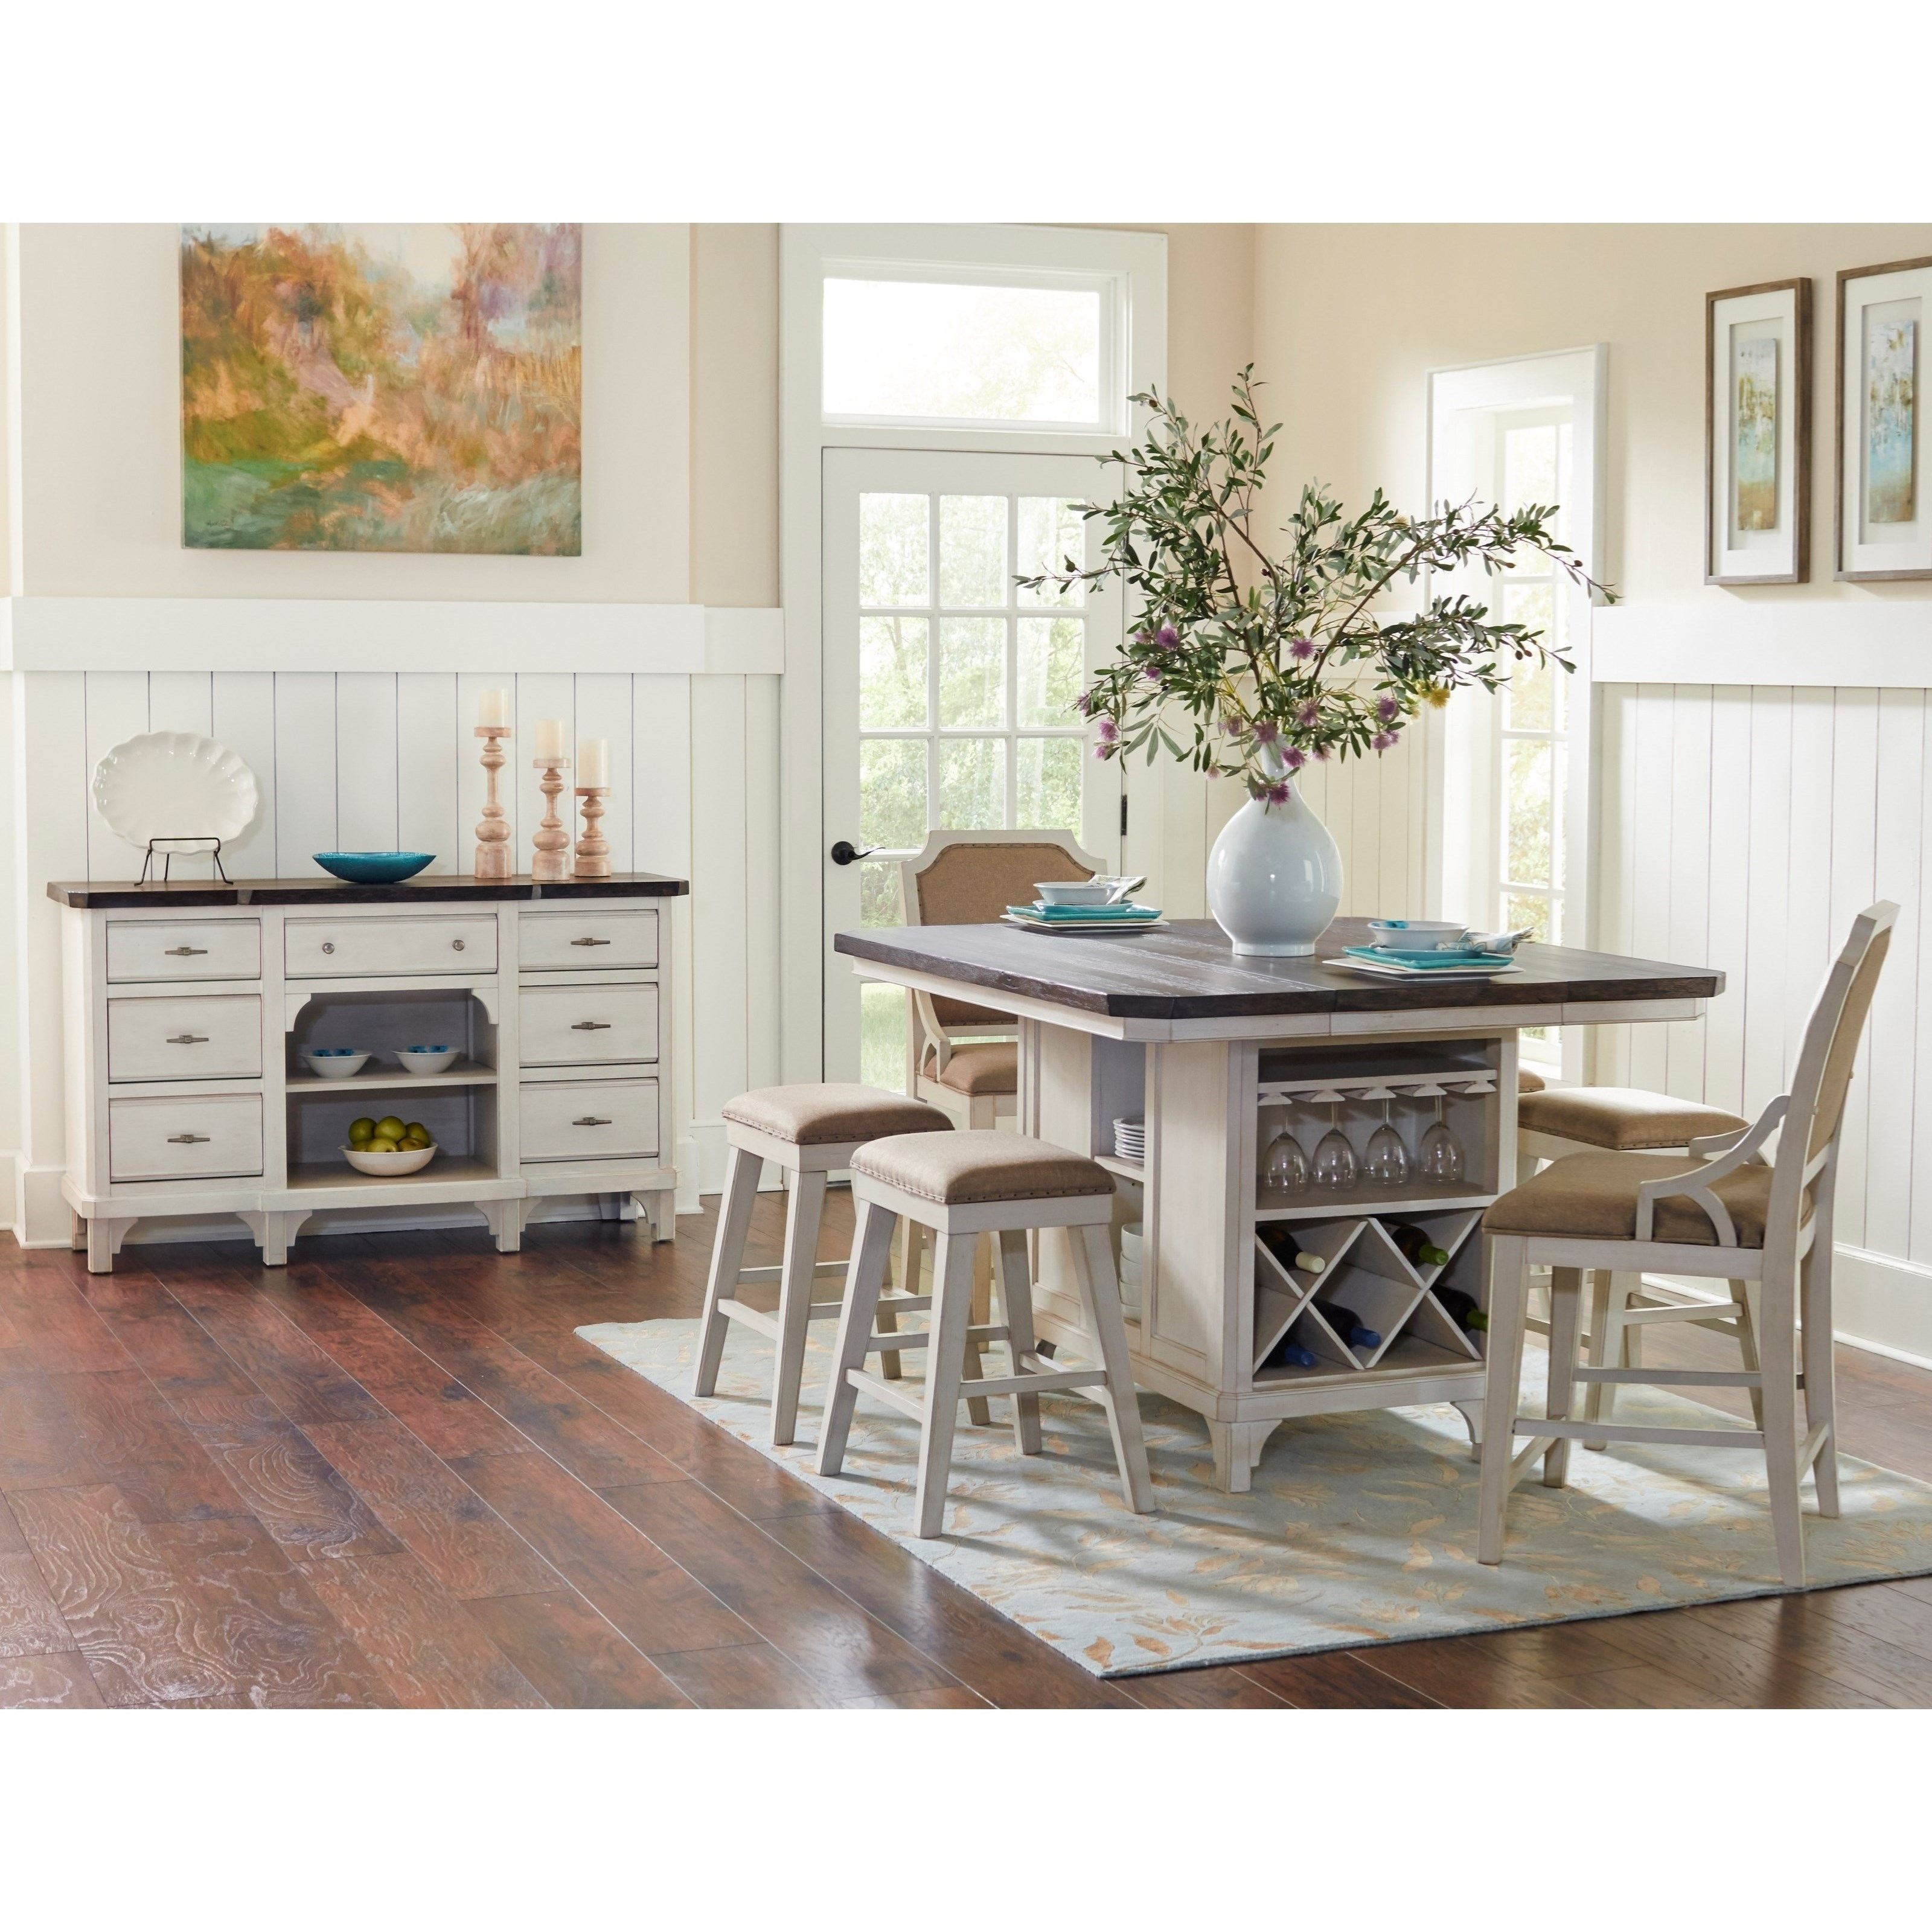 Merveilleux Mystic Cay Casual Dining Room Group By VFM Signature